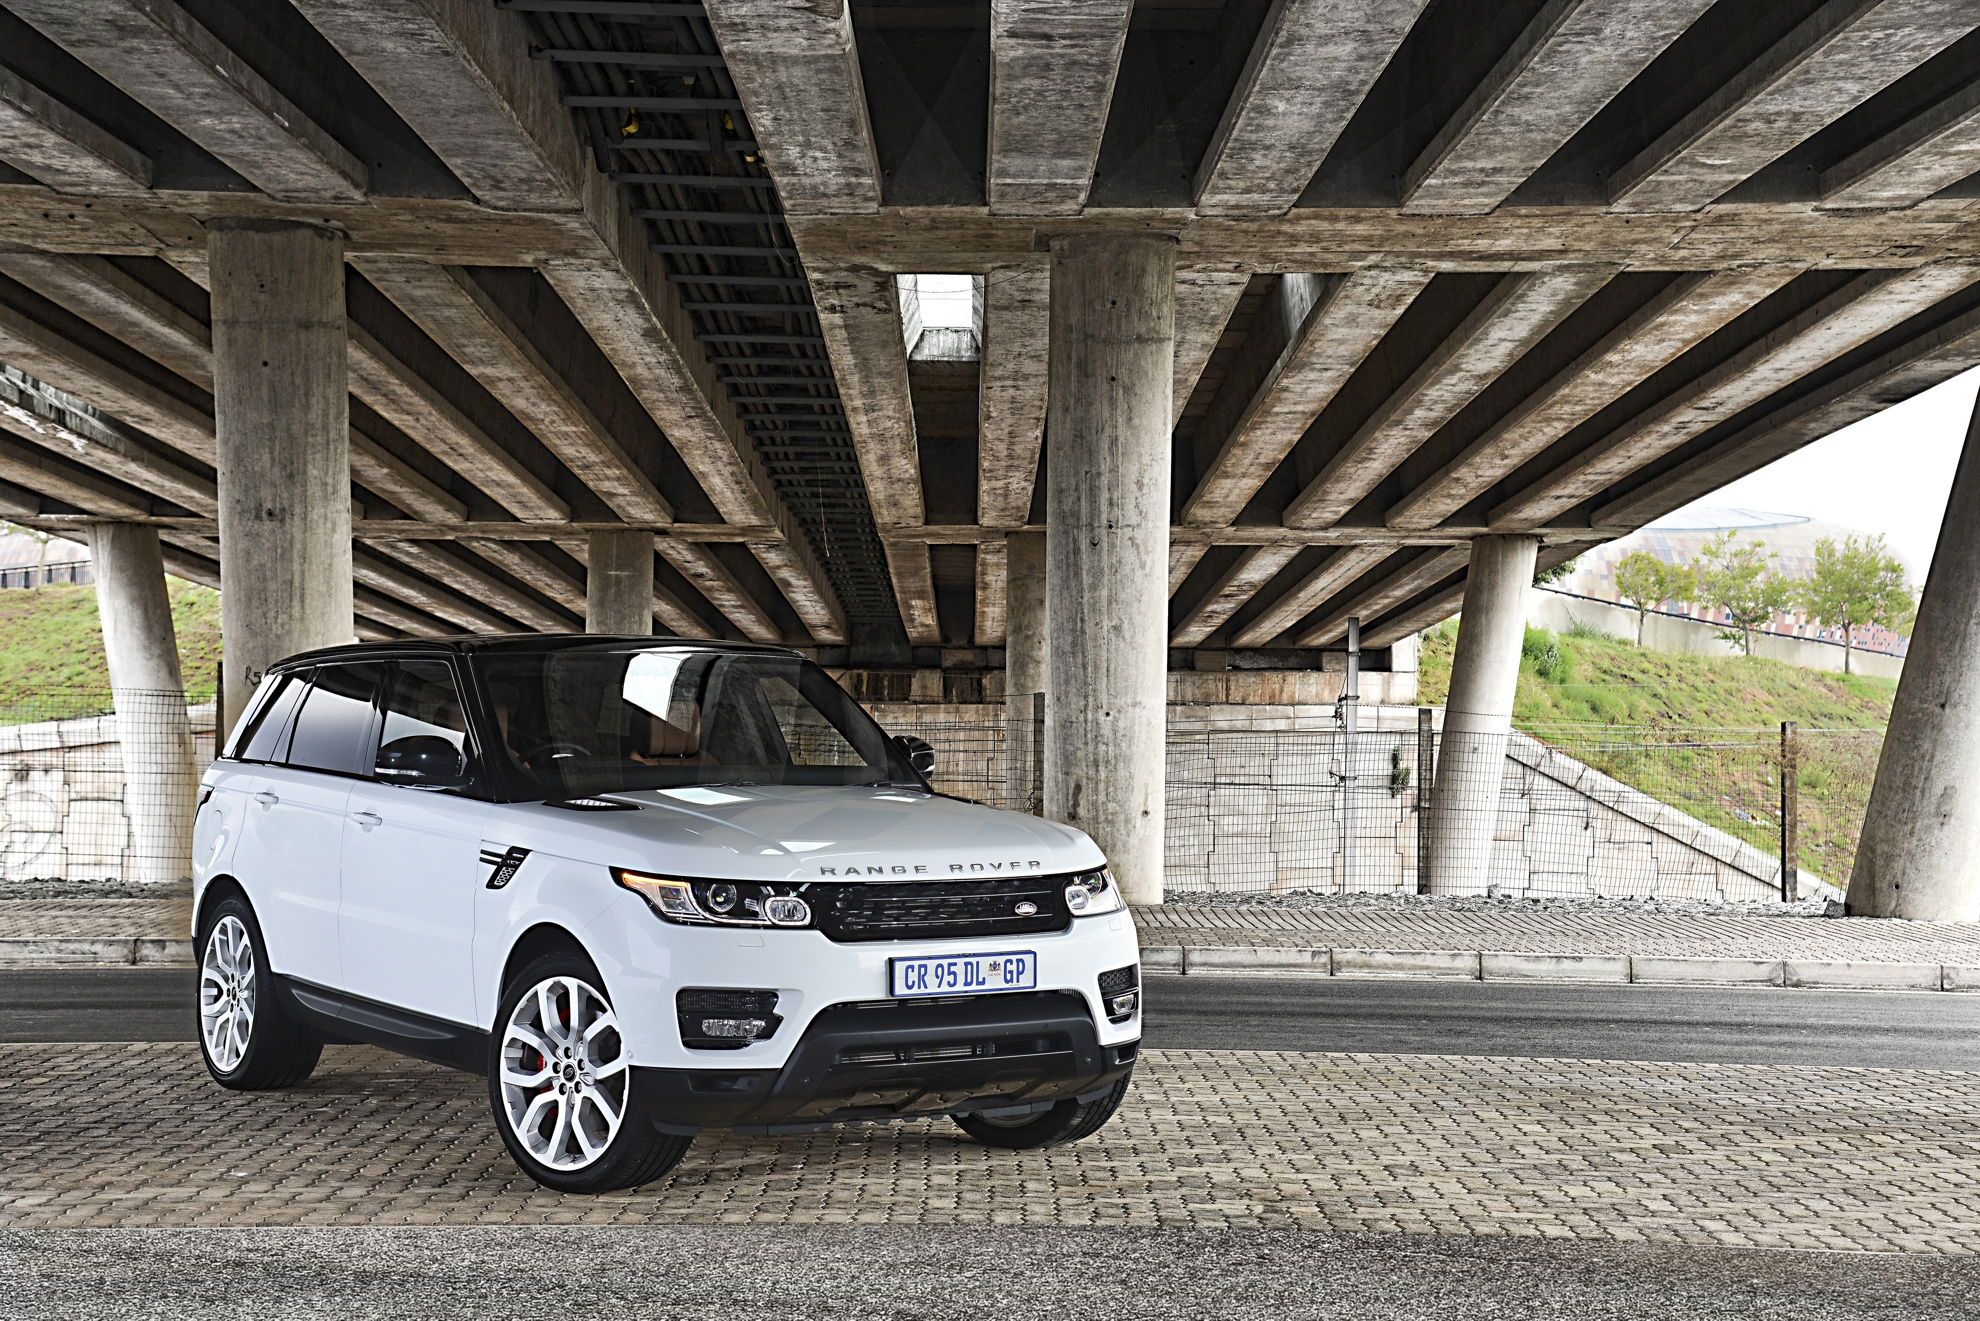 Range Rover Sport Launched In South Africa Transmission Fluid